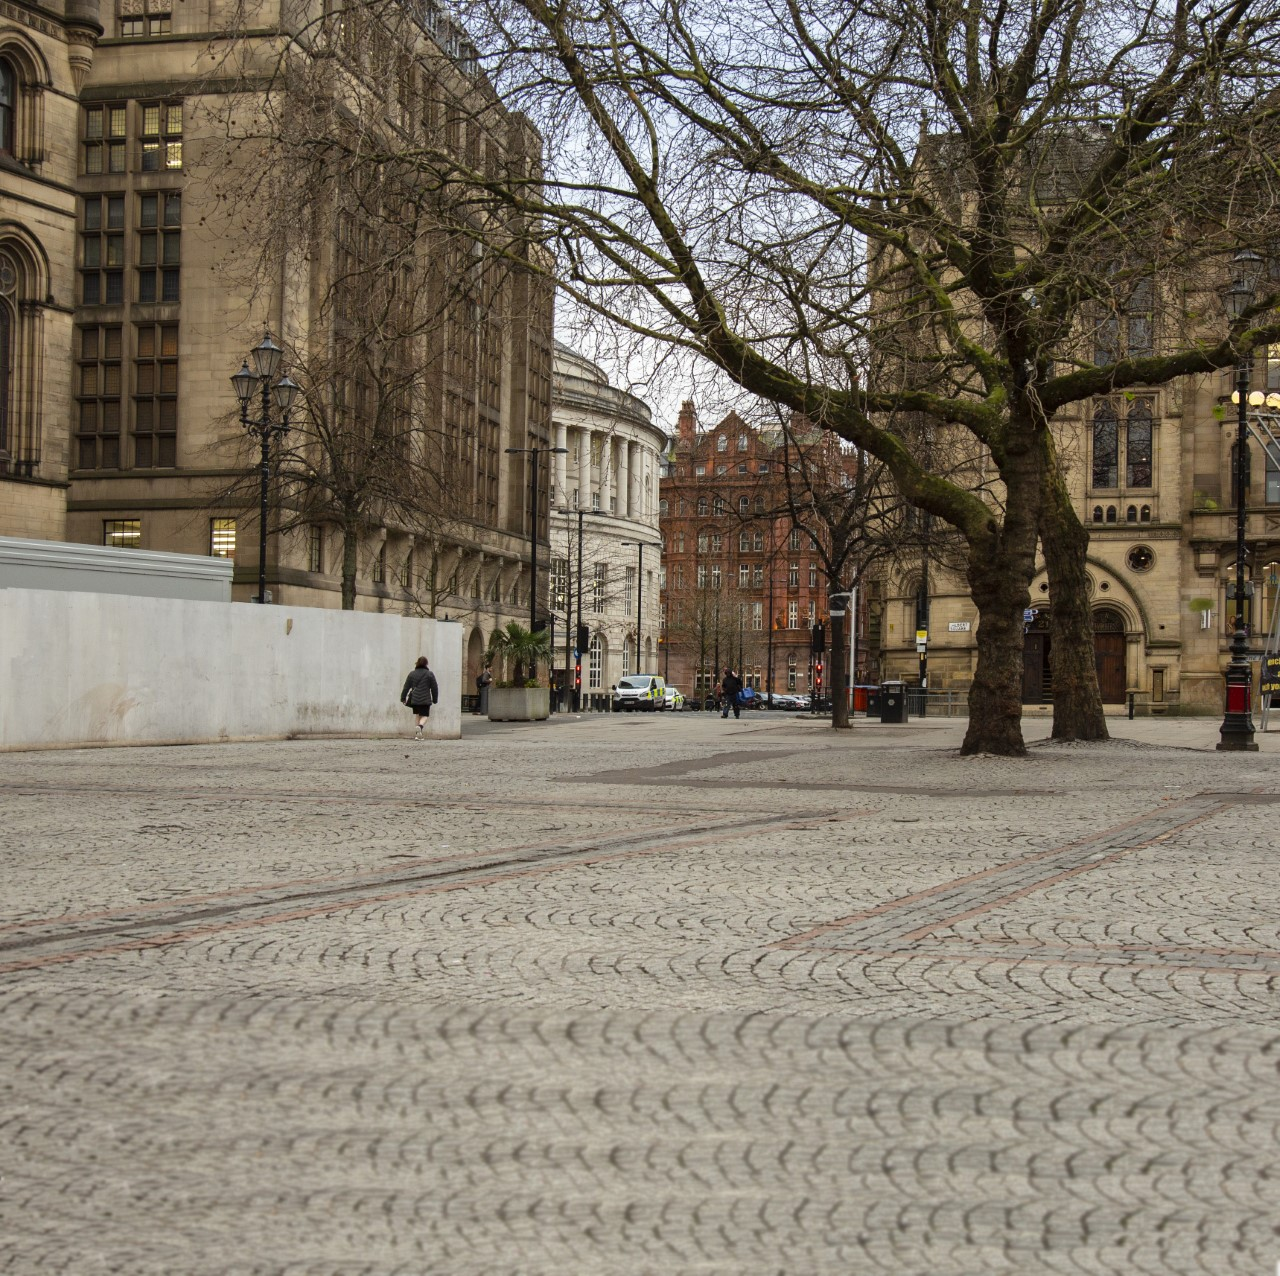 Albert Square, Manchester - Now